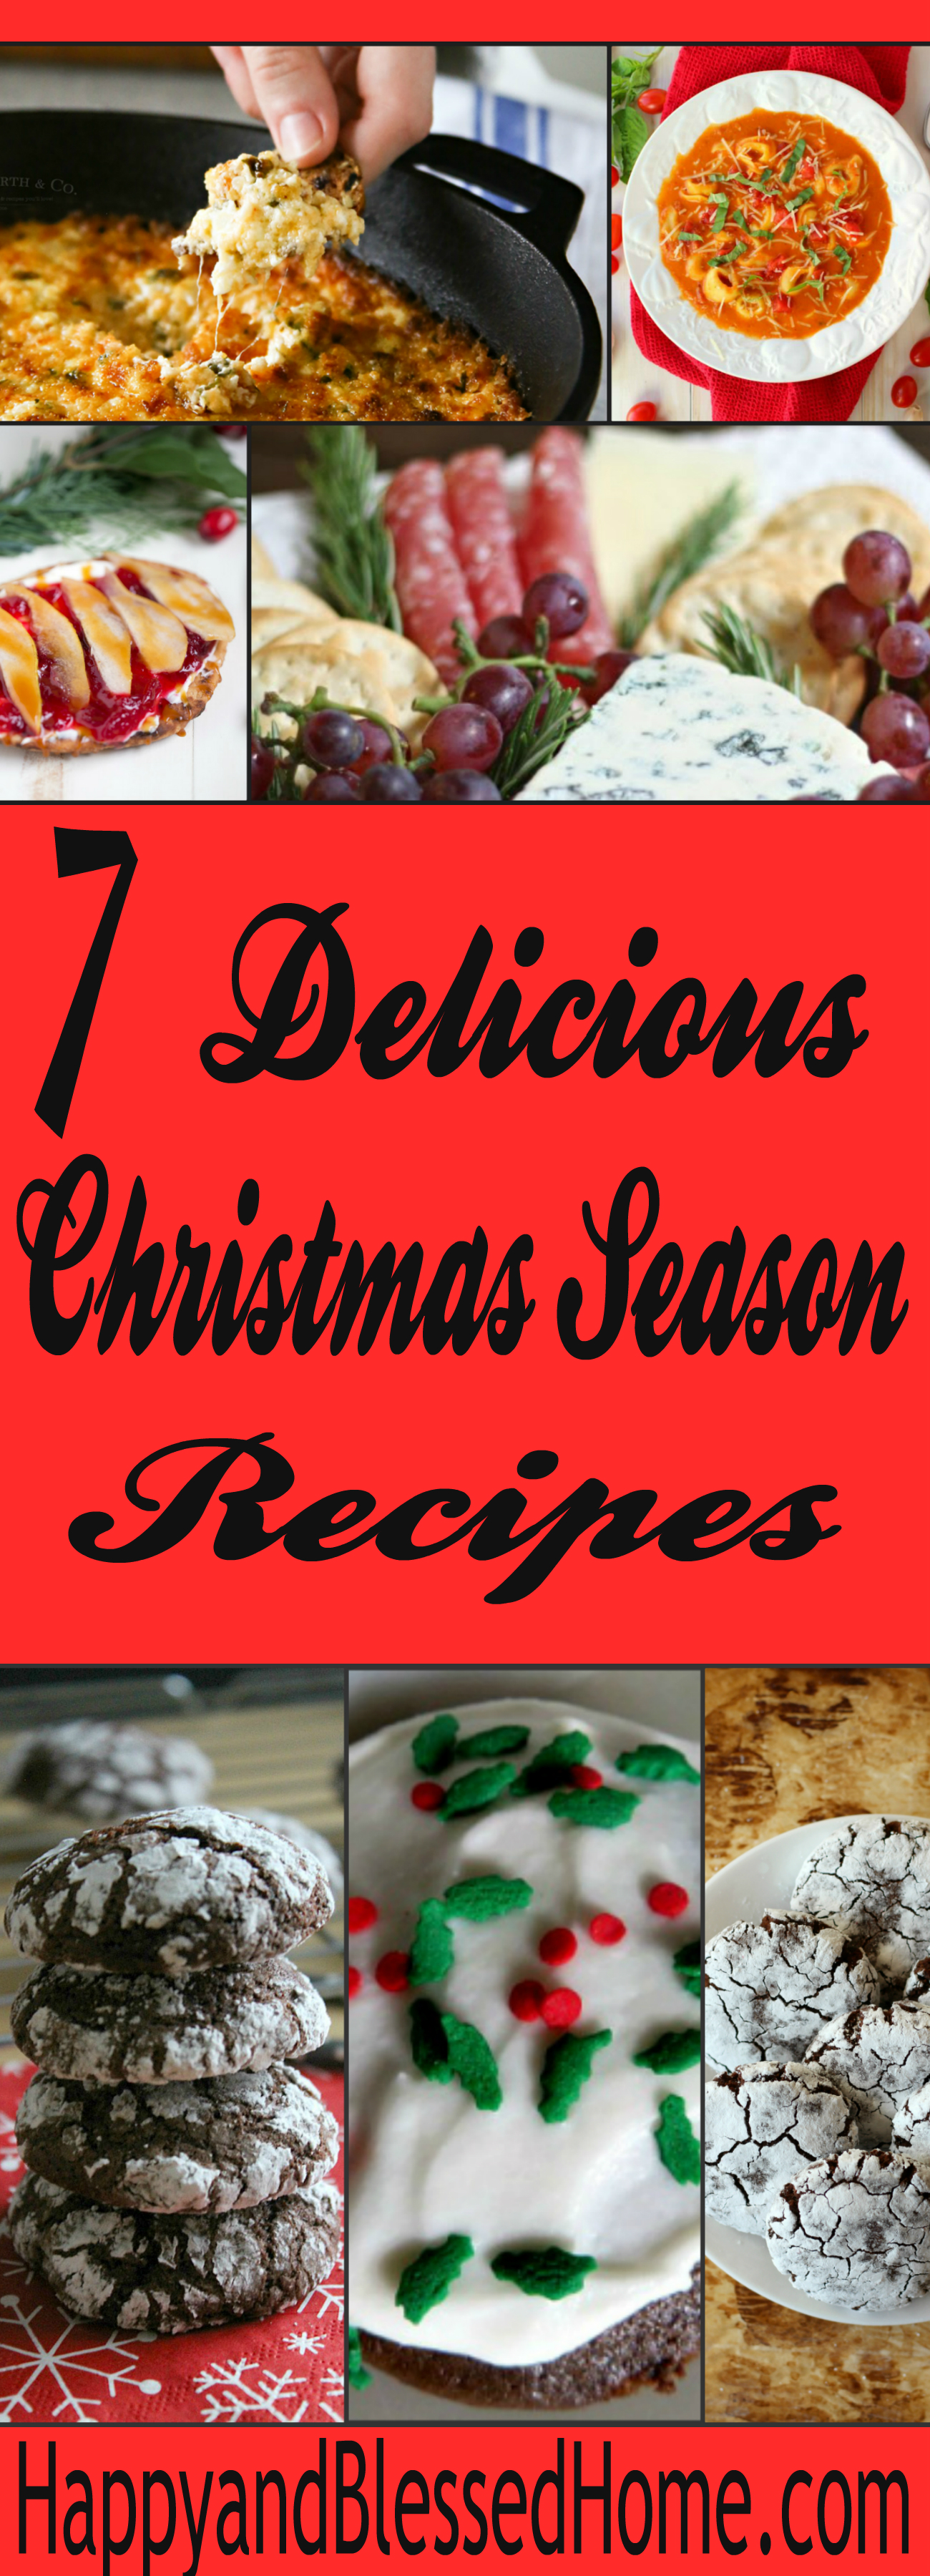 7 Delicious Christmas Recipes  Happy and Blessed Home